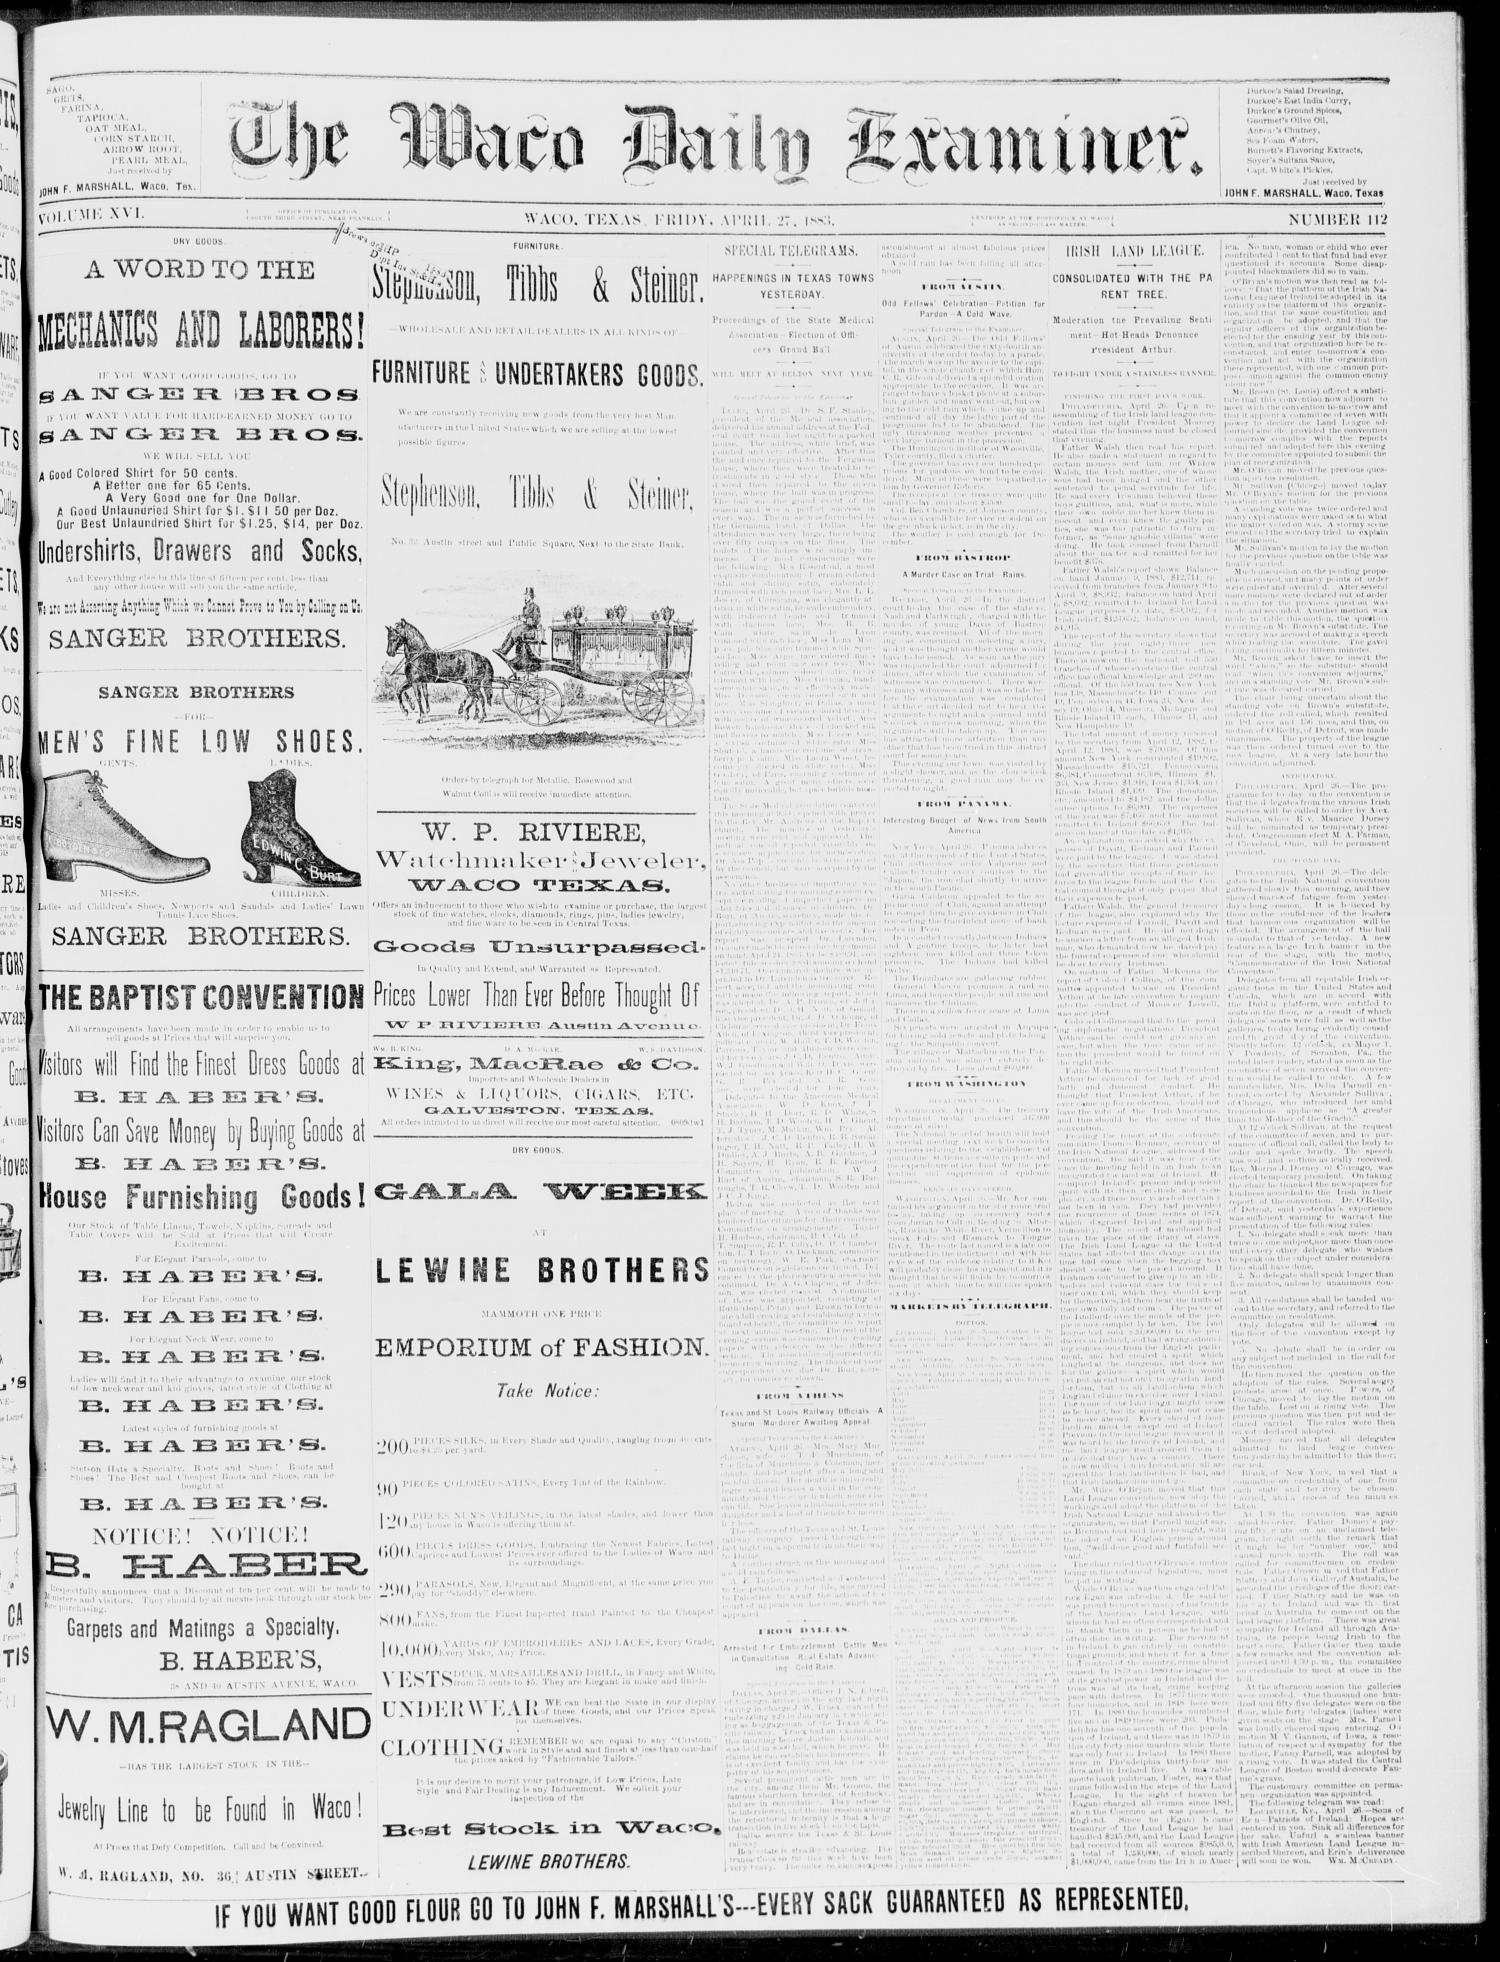 The Waco Daily Examiner. (Waco, Tex.), Vol. 16, No. 112, Ed. 1, Friday, April 27, 1883                                                                                                      [Sequence #]: 1 of 4